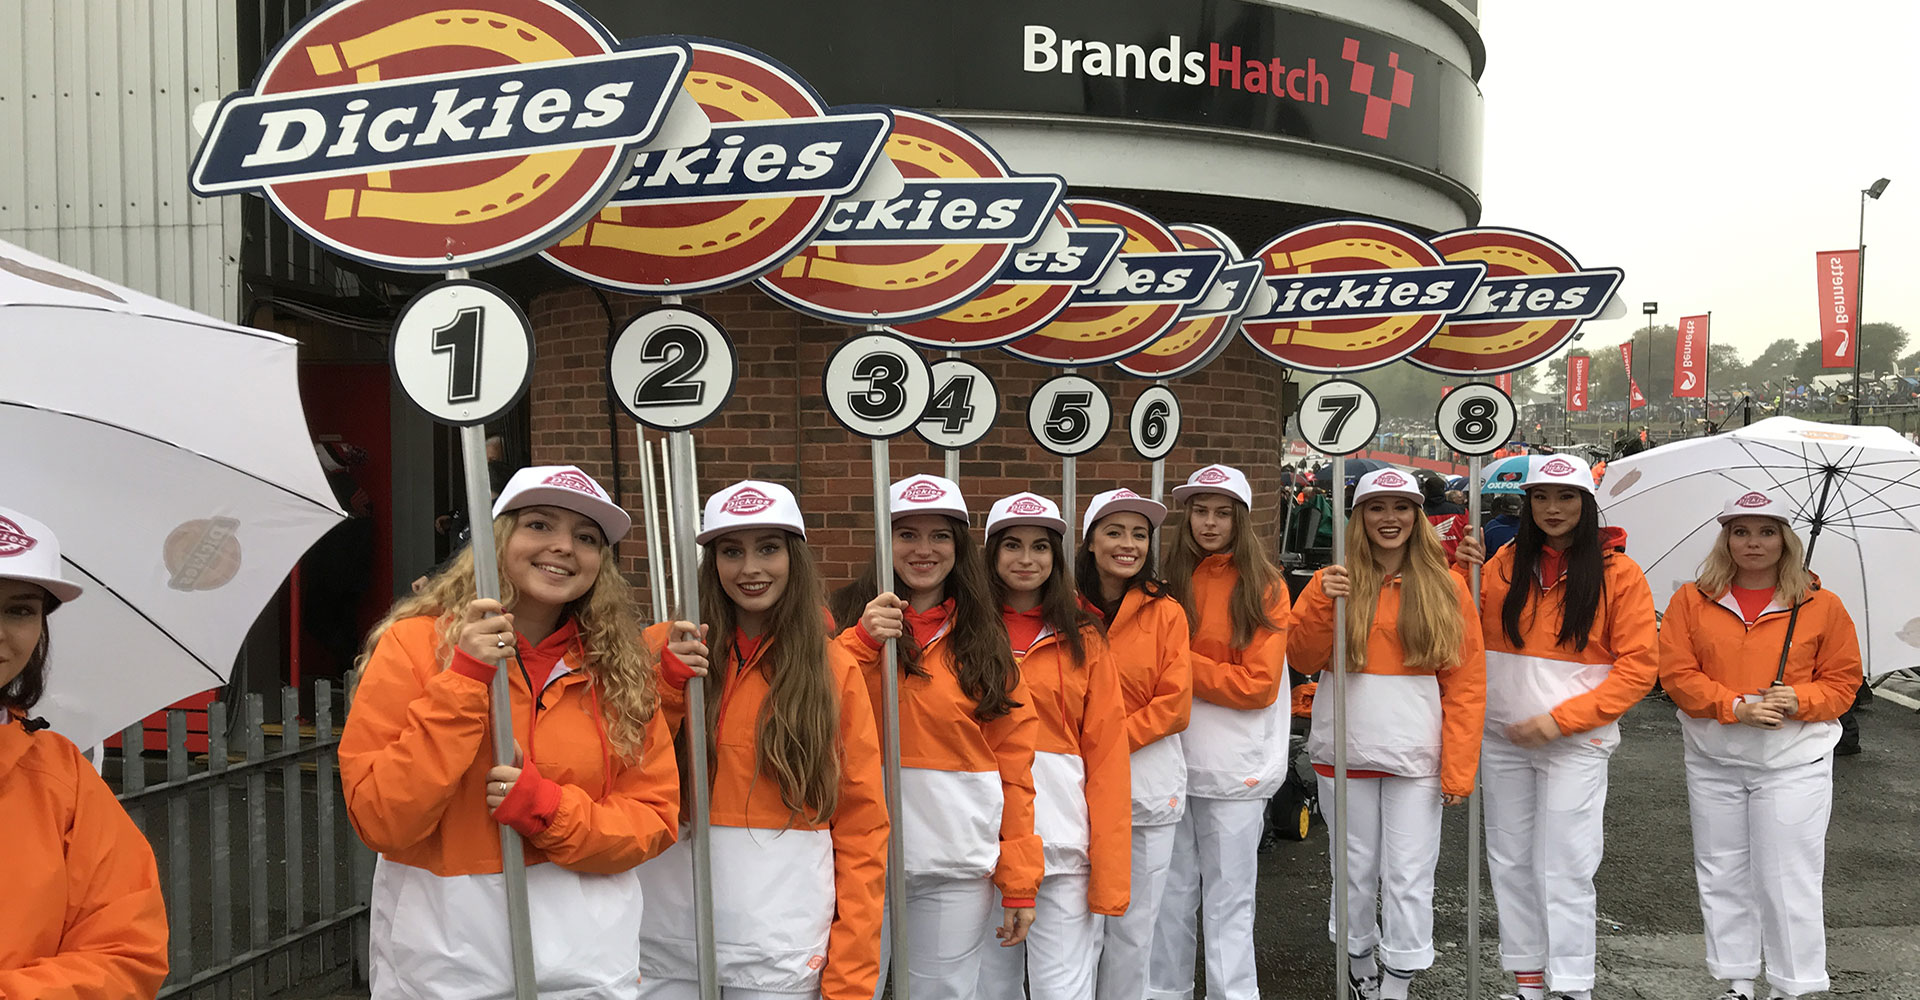 Pitlane promotional models at minibike supercross event